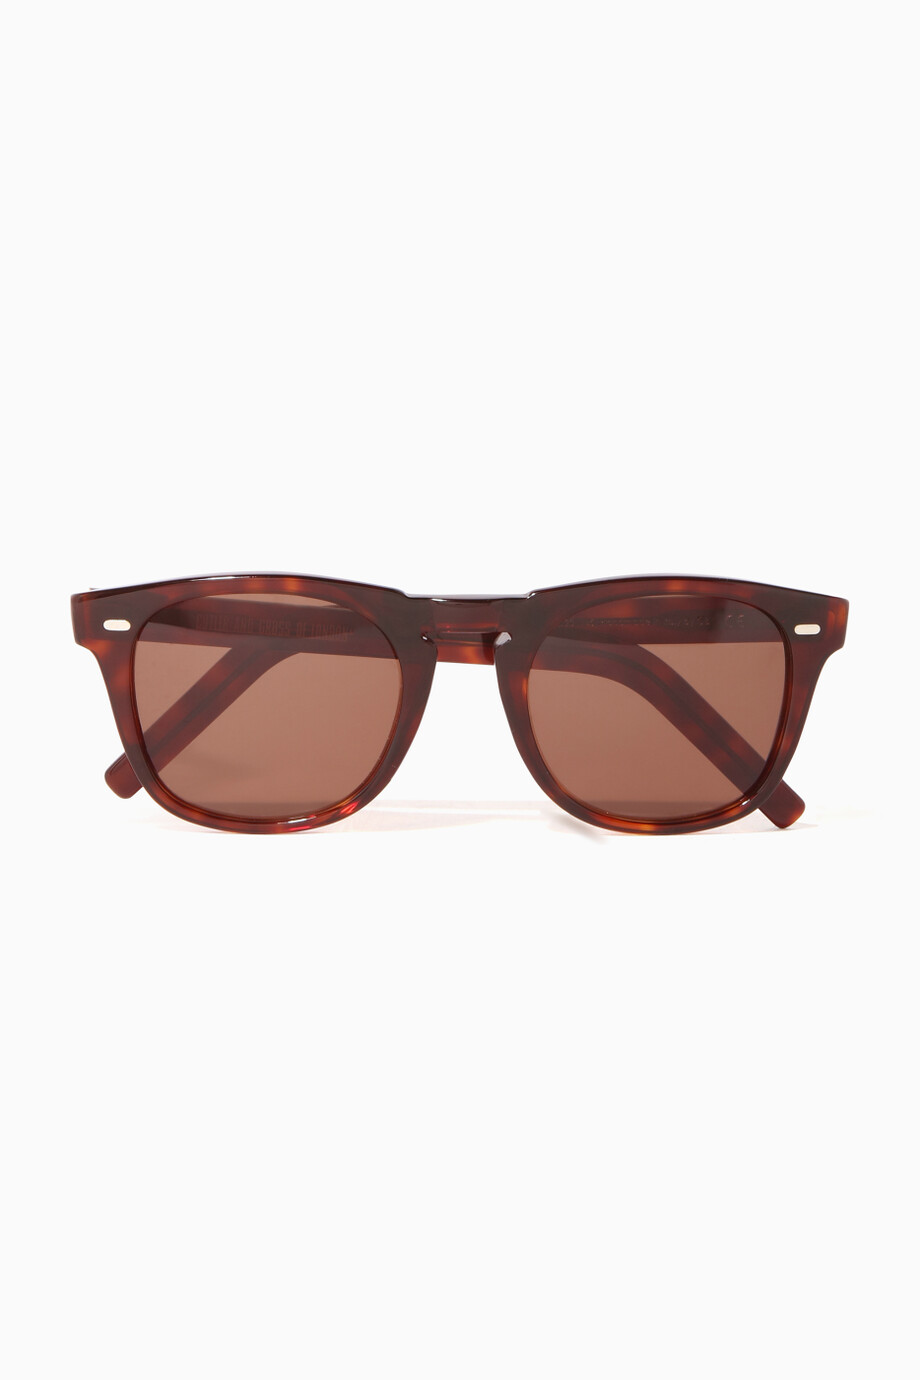 06ce9df03c Shop Cutler   Gross Brown Brown Tortoiseshell Rounded-Square Acetate ...